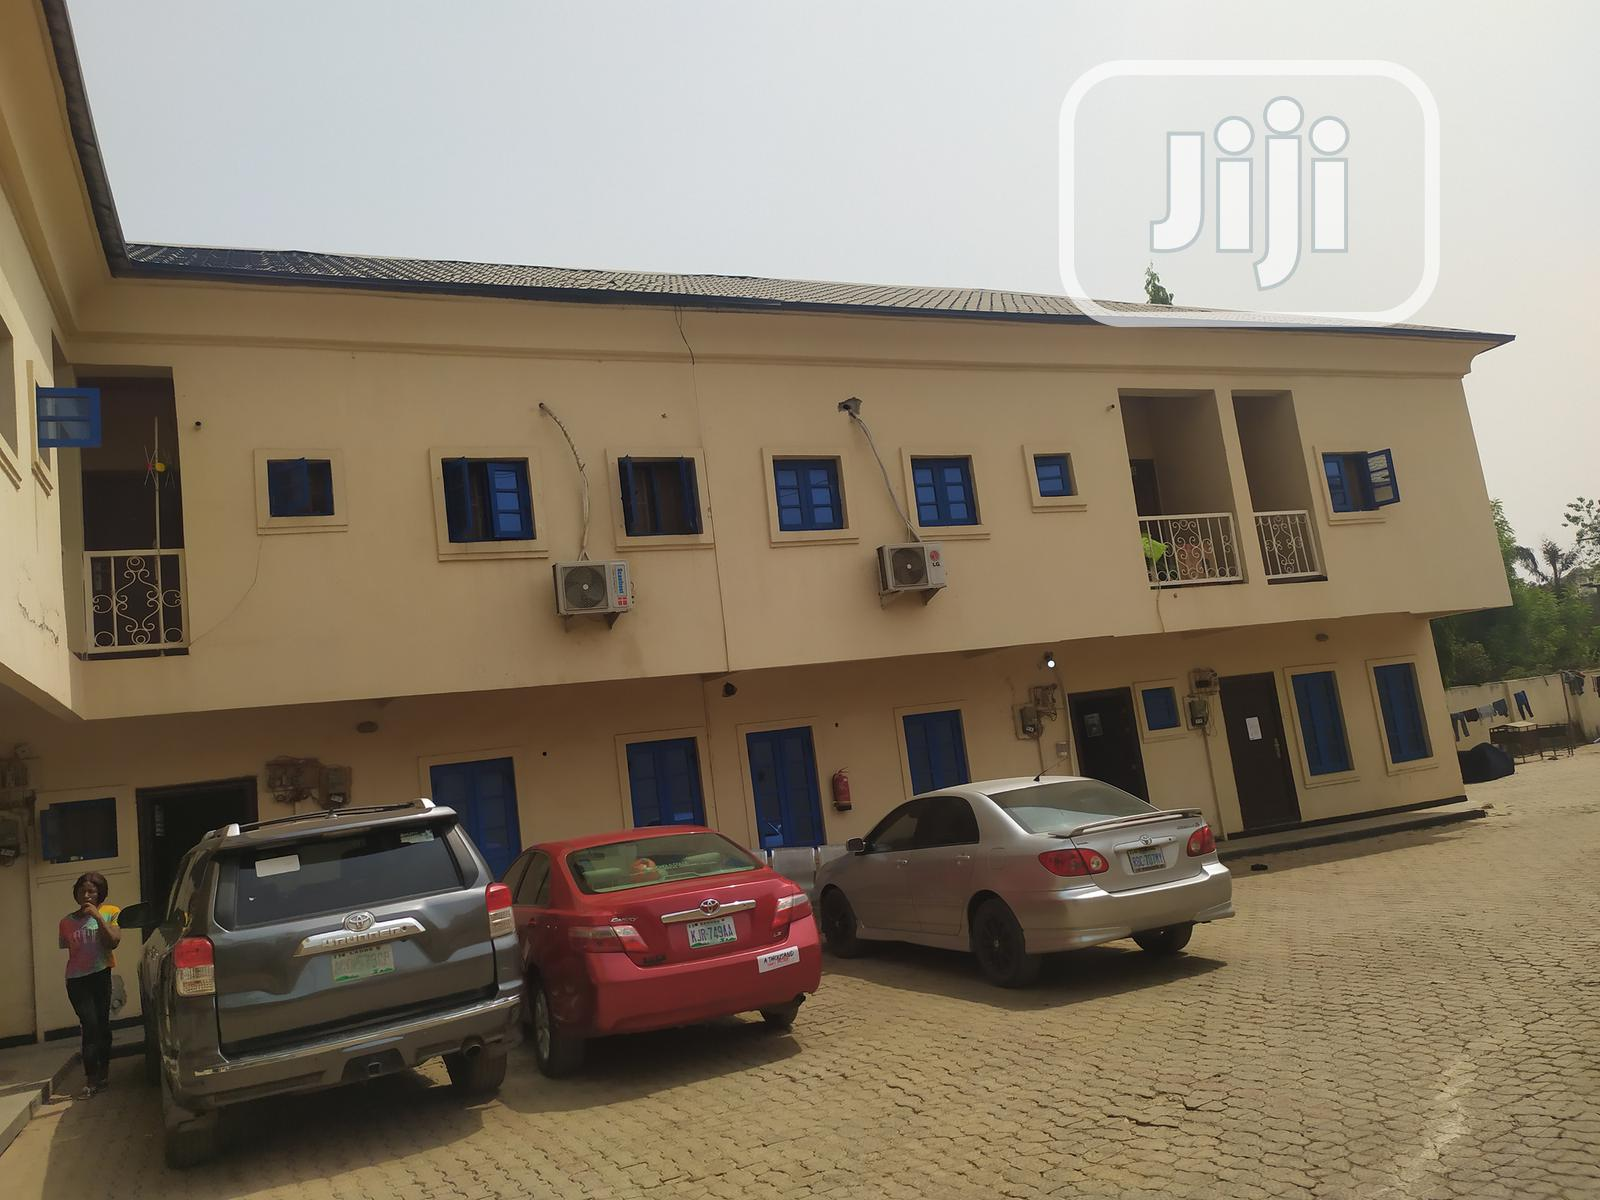 5 Units of 3 Bedroom Terrace Duplexes With BQ | Houses & Apartments For Sale for sale in Area 8, Garki 1, Nigeria